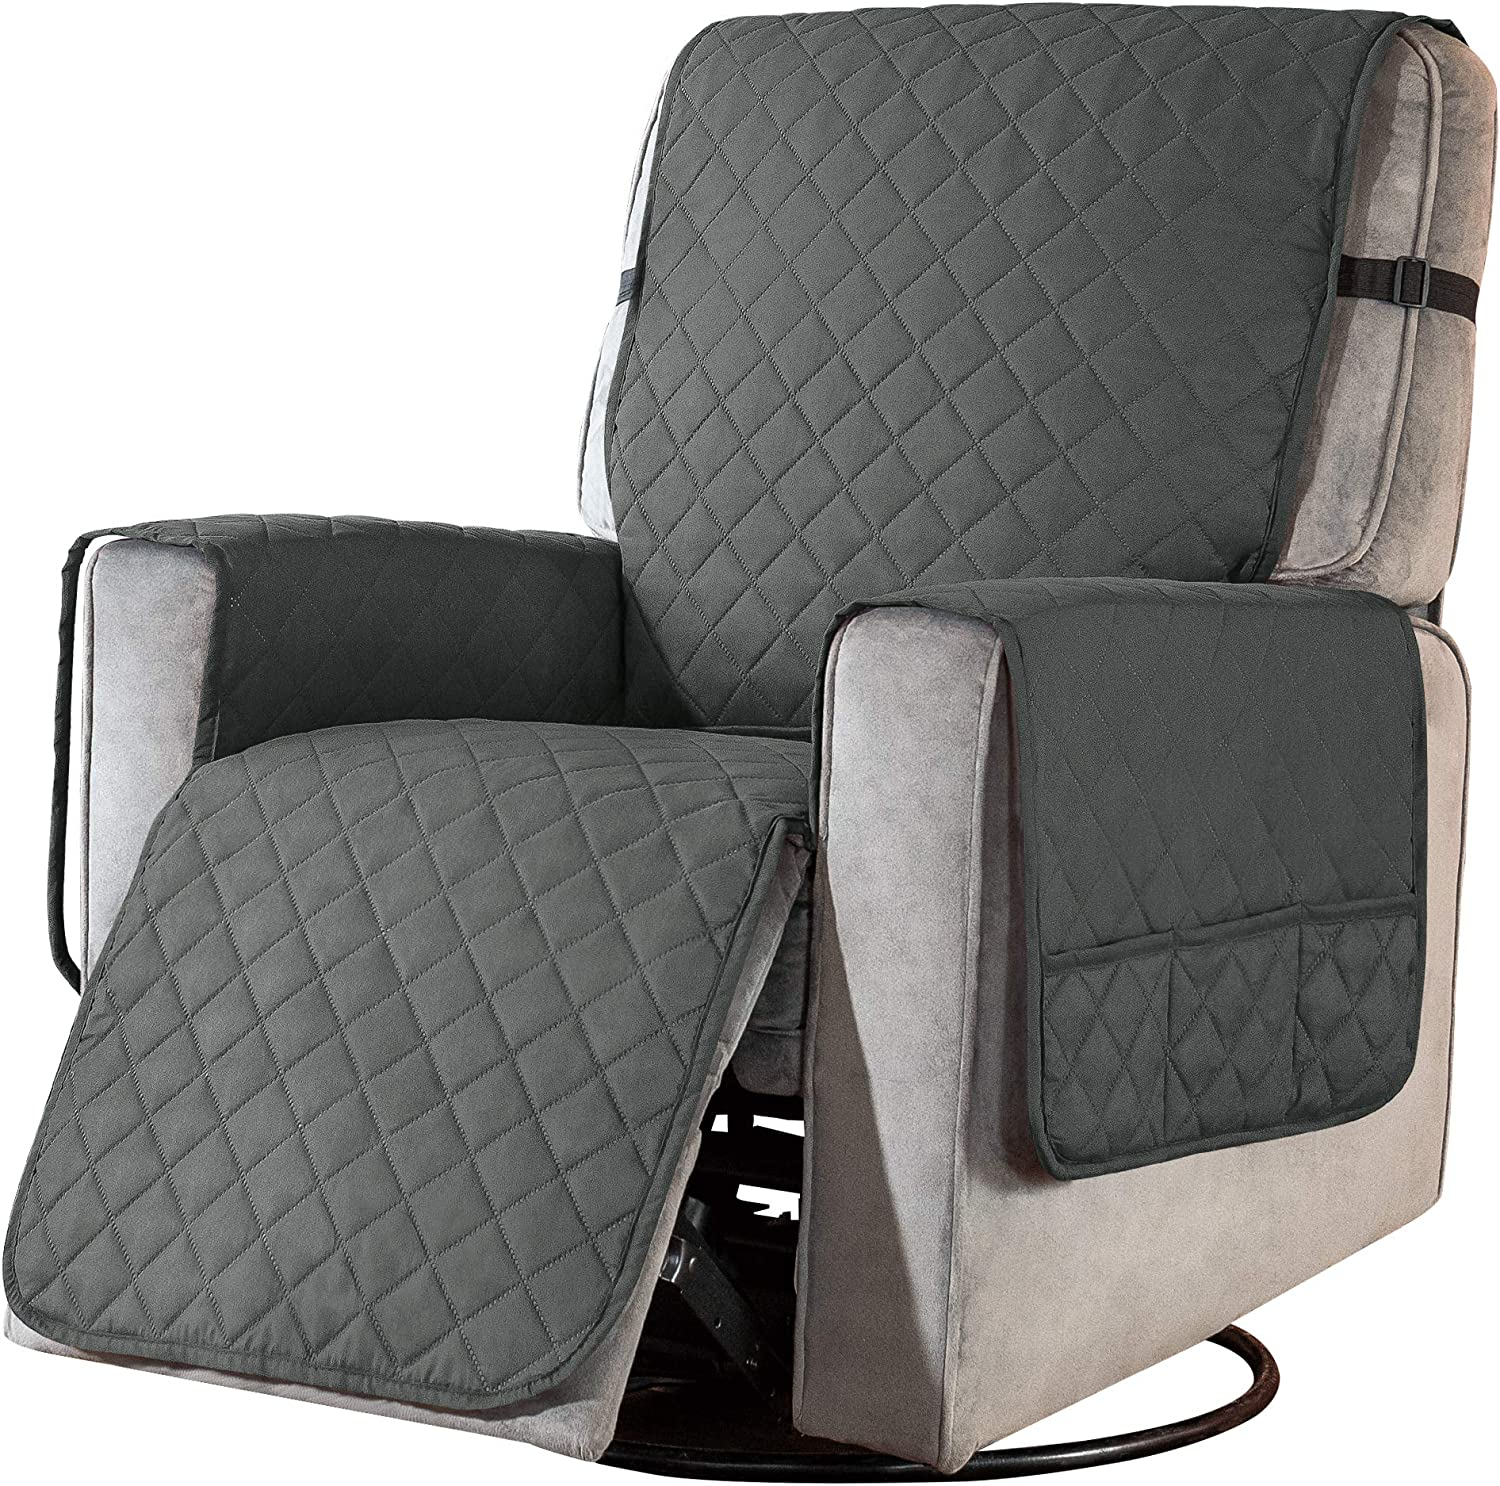 Subrtex Recliner Chair Covers Slipcov Small Fitted OFFicial 67% OFF of fixed price Sofa